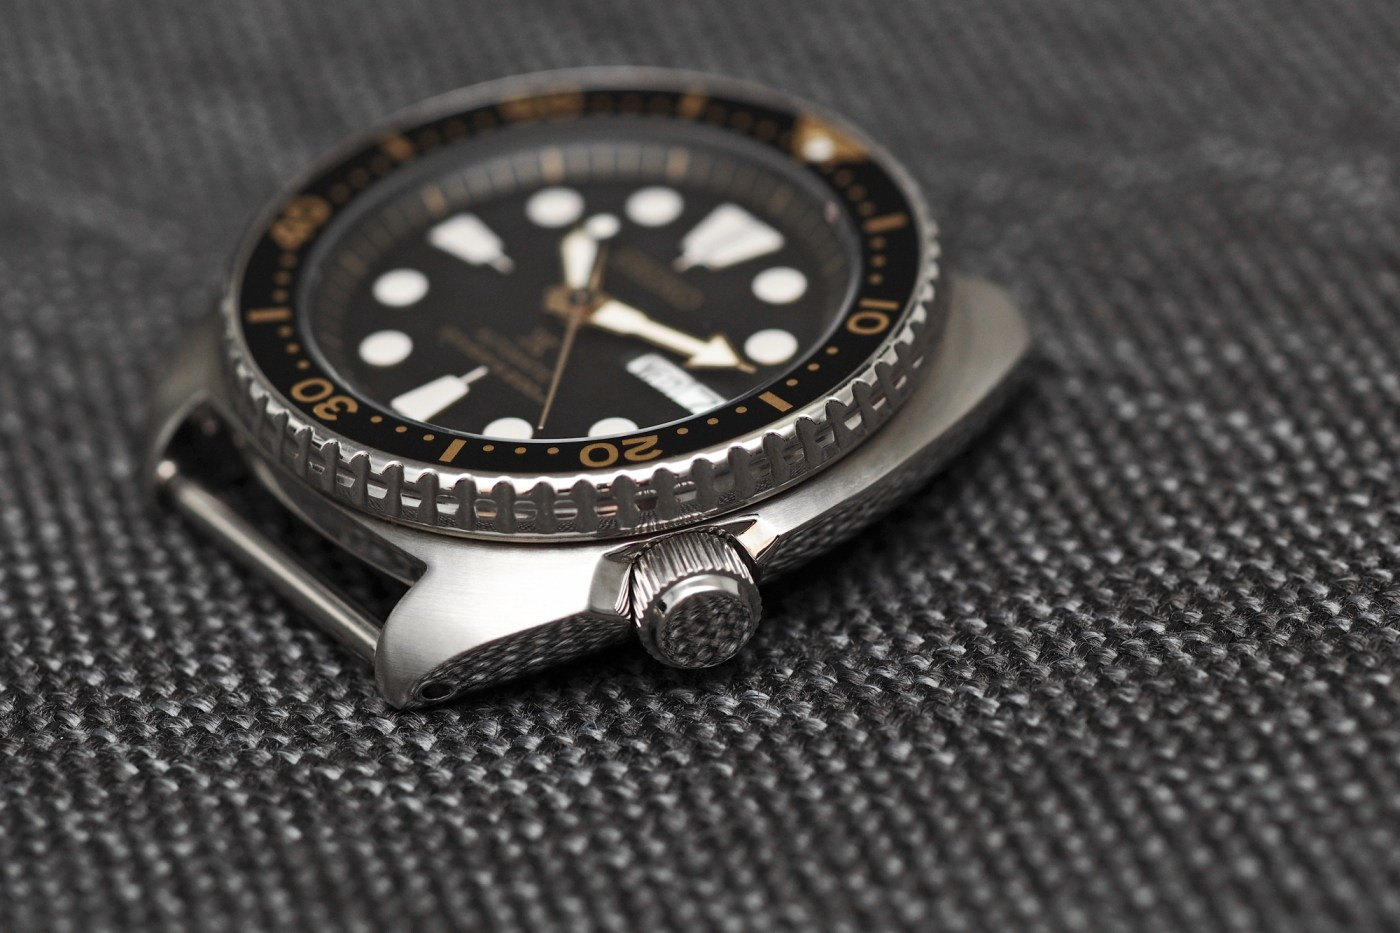 Case side detail Seiko SRP775 diver